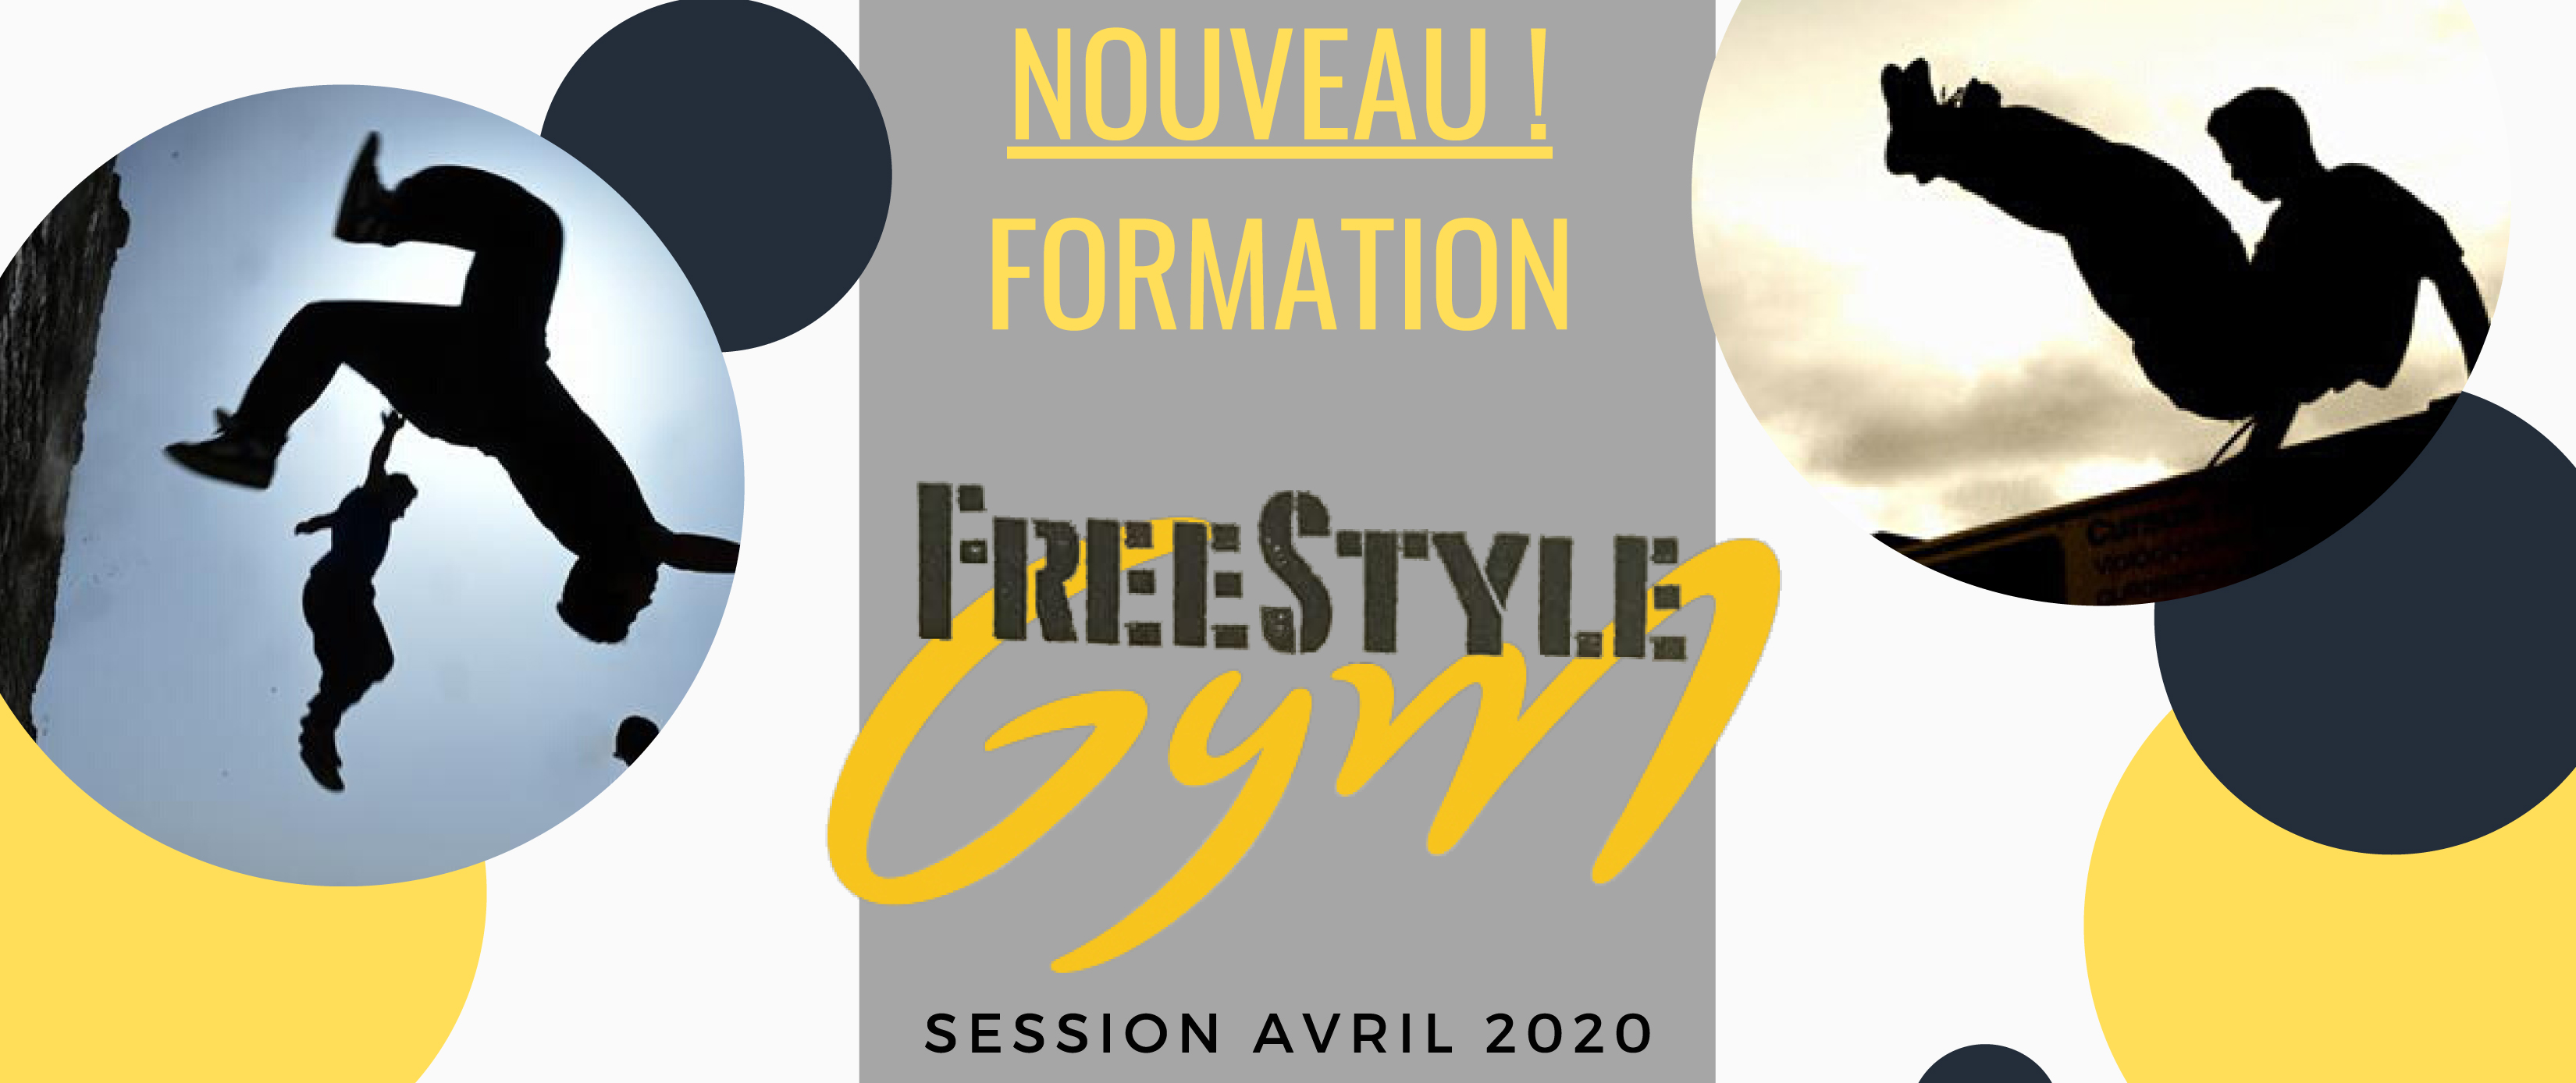 Formation FREESTYLE GYM Occitanie les 11-12 et 18-19 Avril 2020 à Sète